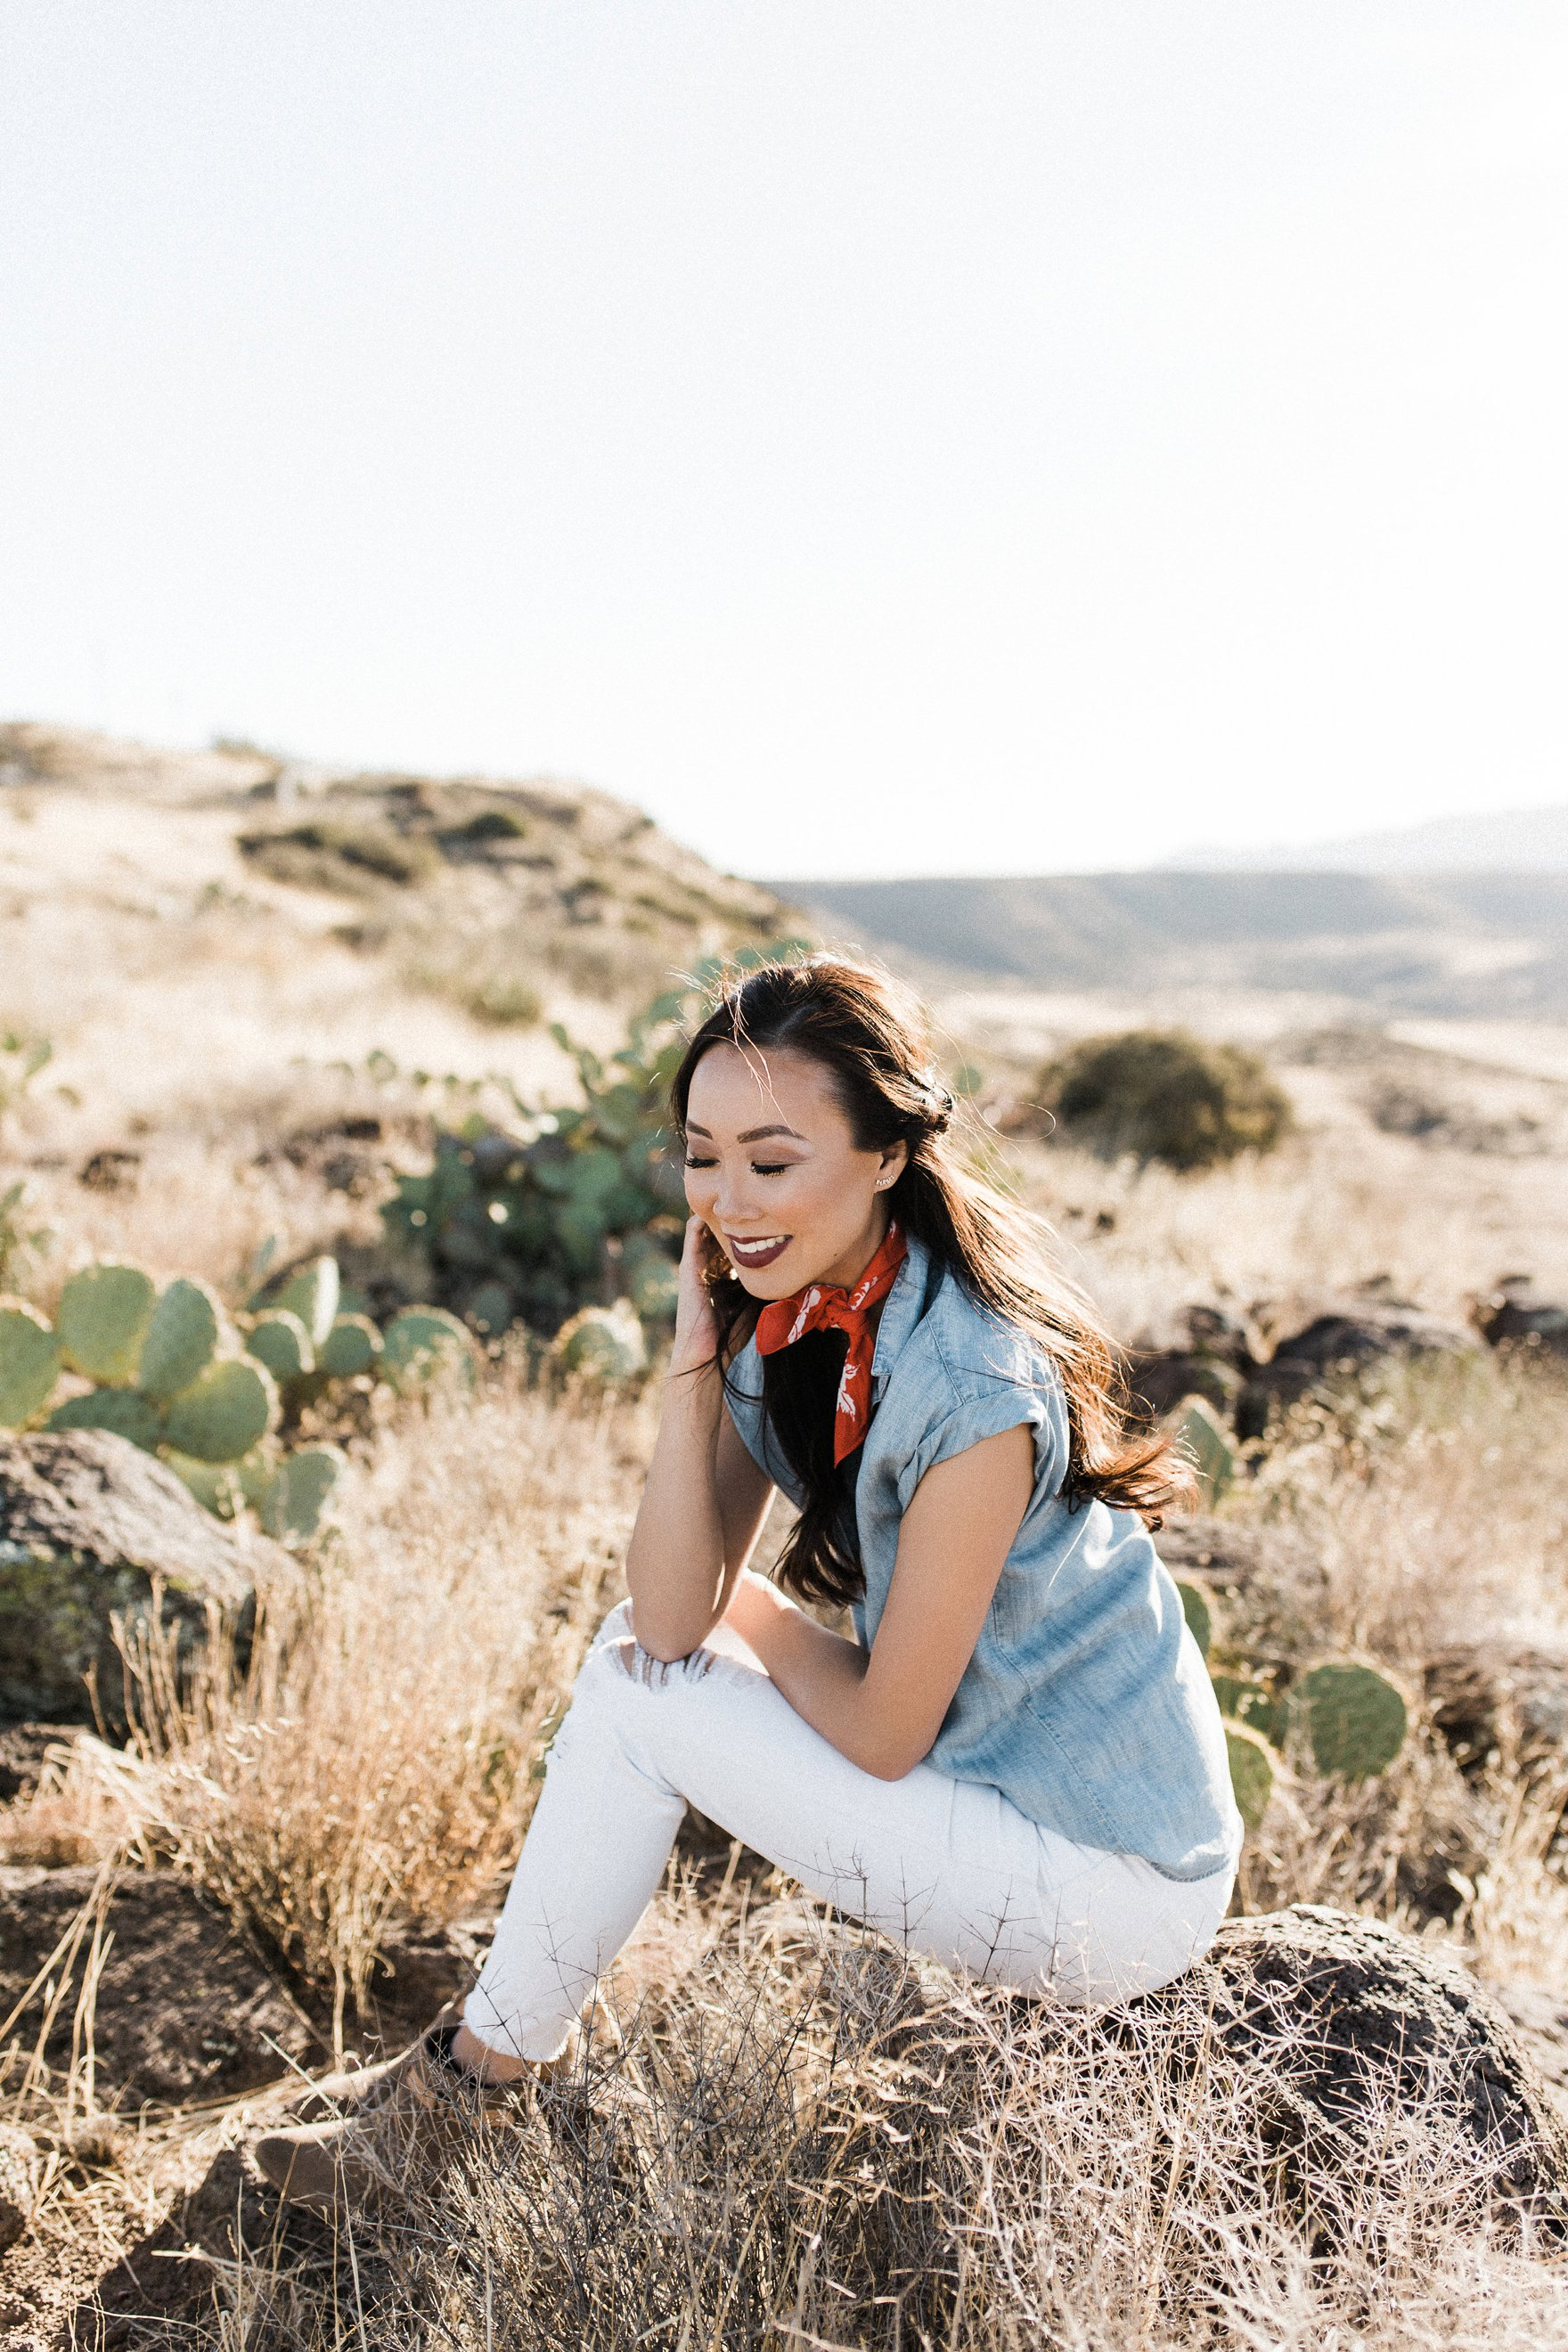 chambray short sleeved shirt white jeans with booties in tall dry grass in the arizona phoenix desert wearing red scarf around neck